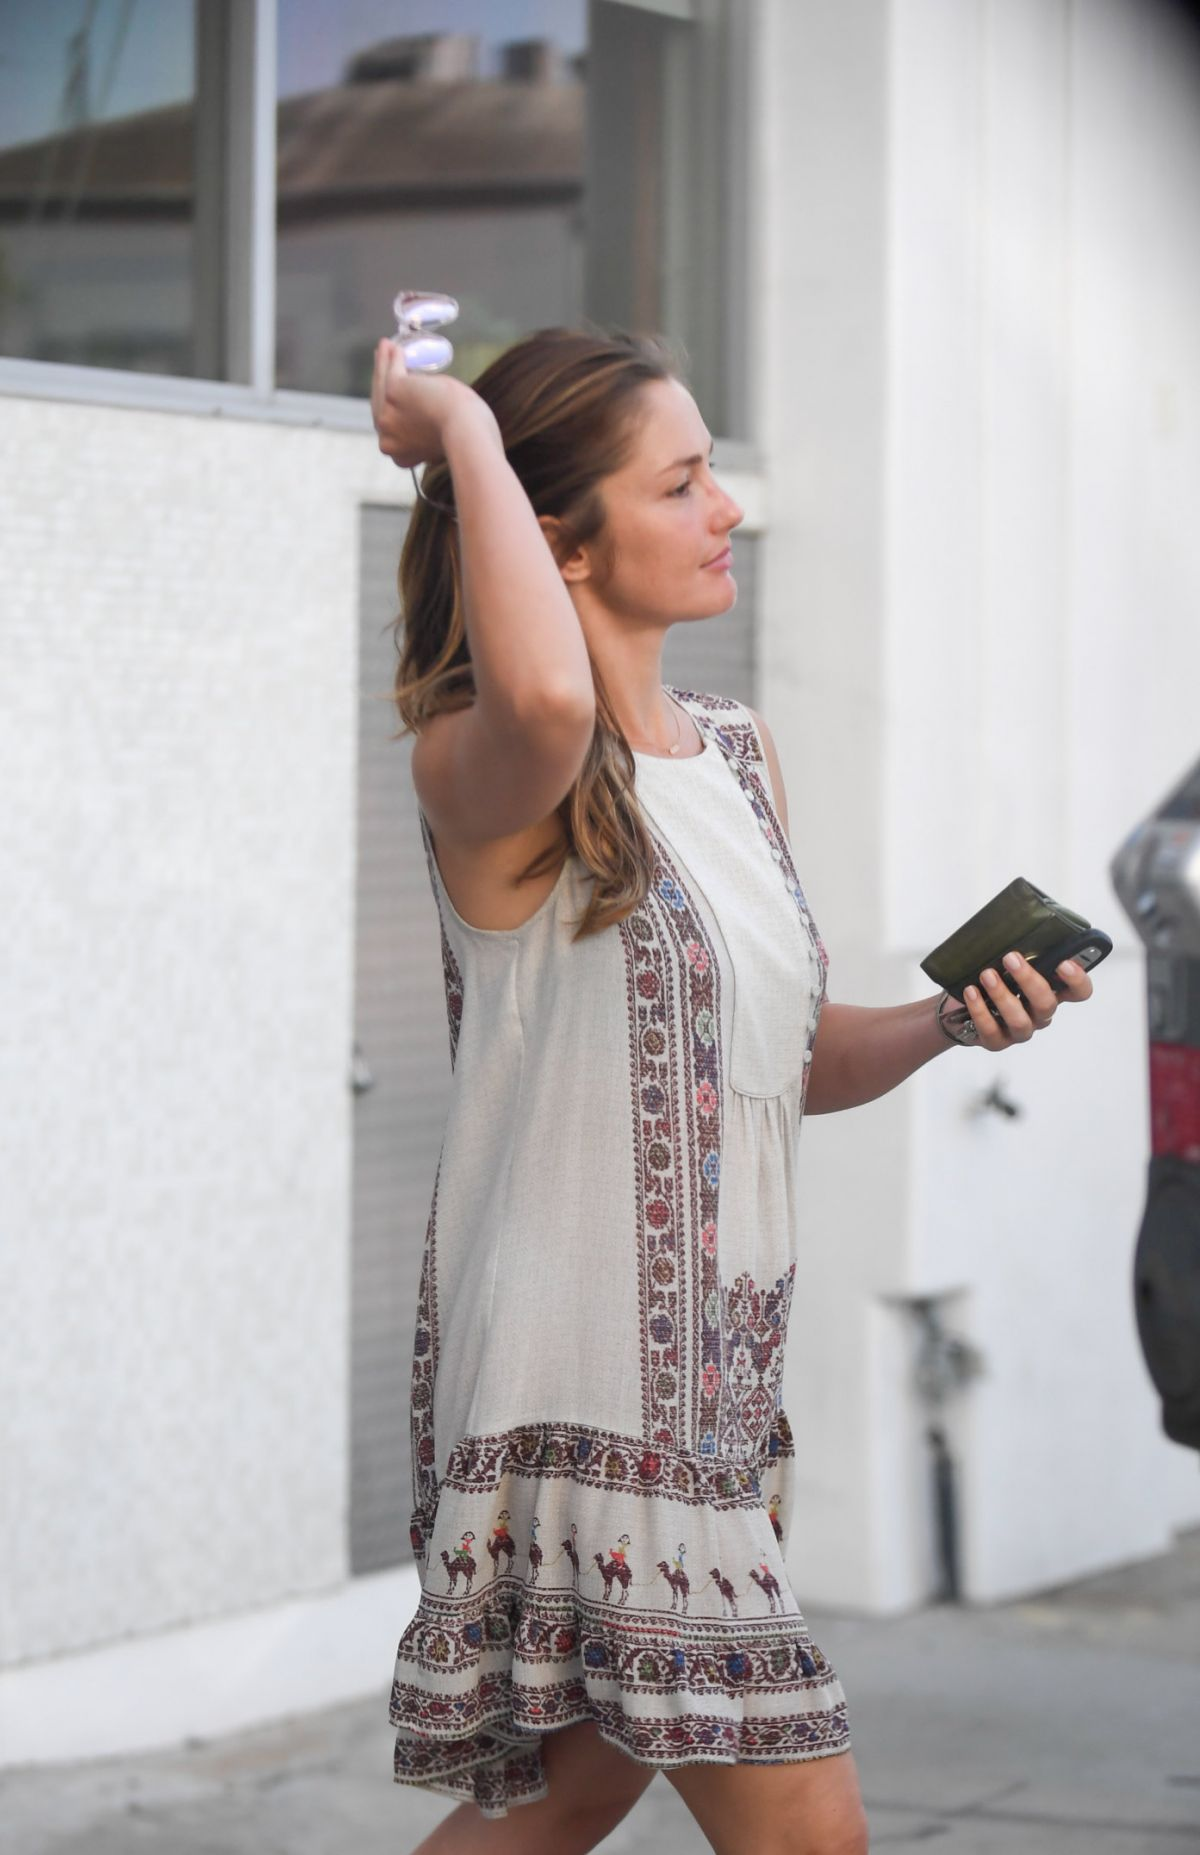 MINKA KELLY Out and About in Hollywood 09/06/2016